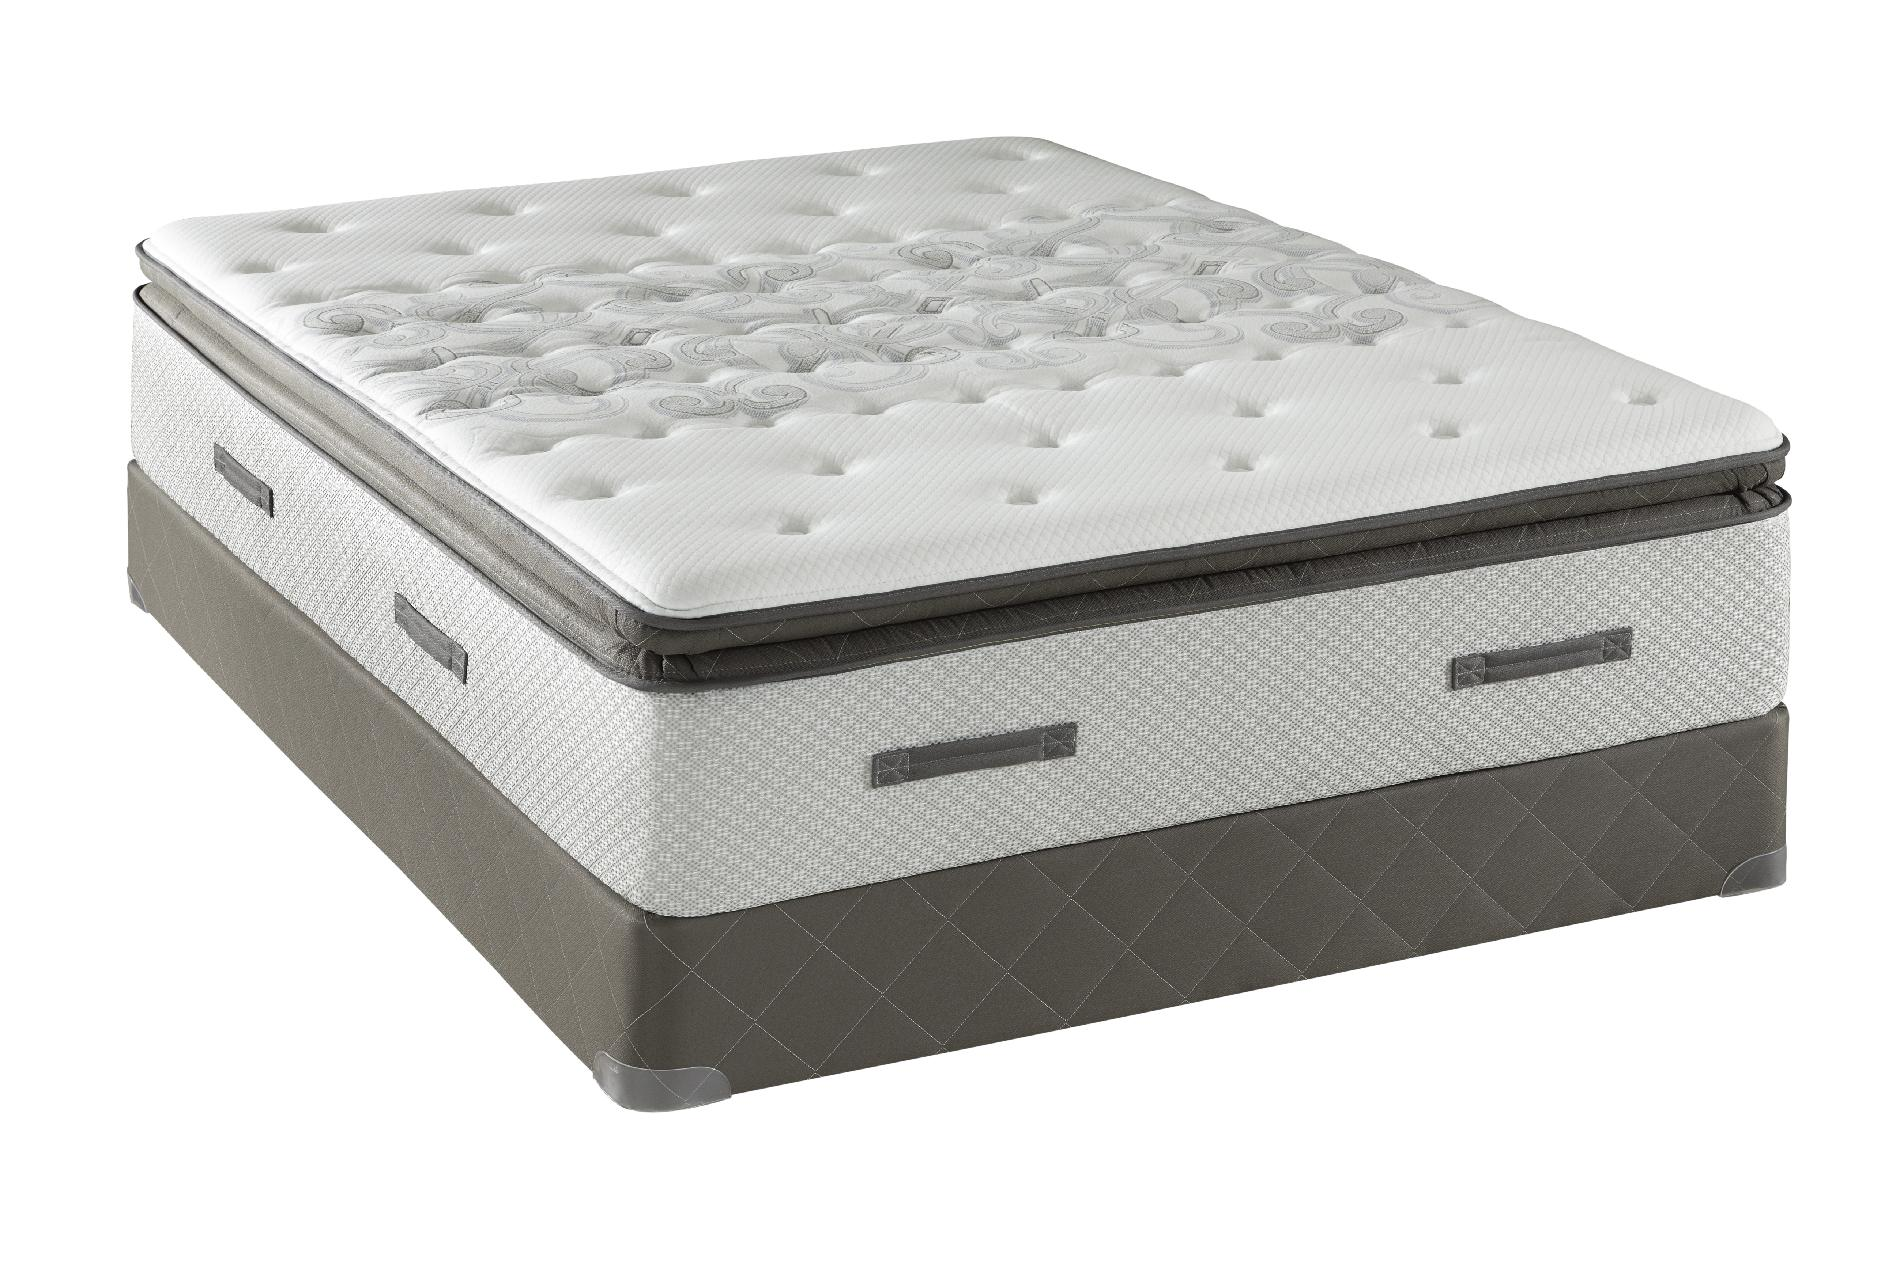 Sealy Posturepedic Granite Bay Ti2 II, Firm Euro Pillowtop, King Mattress Only